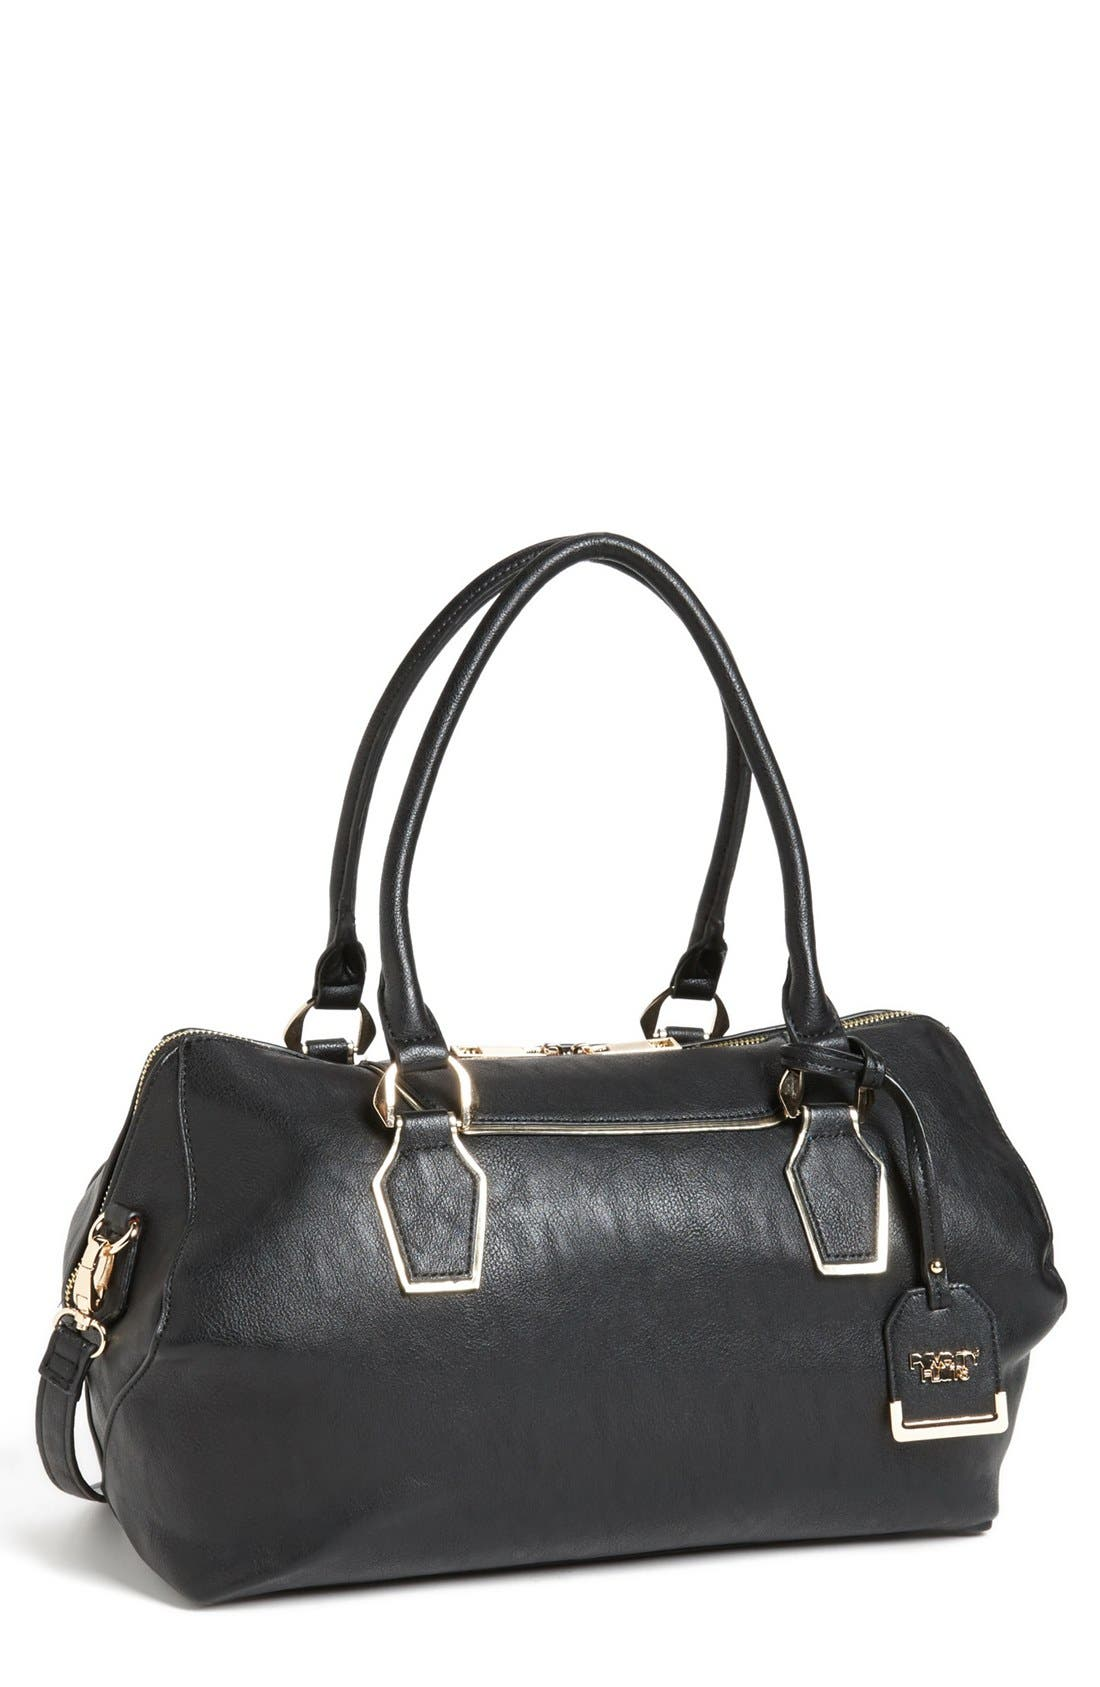 POVERTY FLATS BY RIAN, Faux Leather Satchel, Main thumbnail 1, color, 001